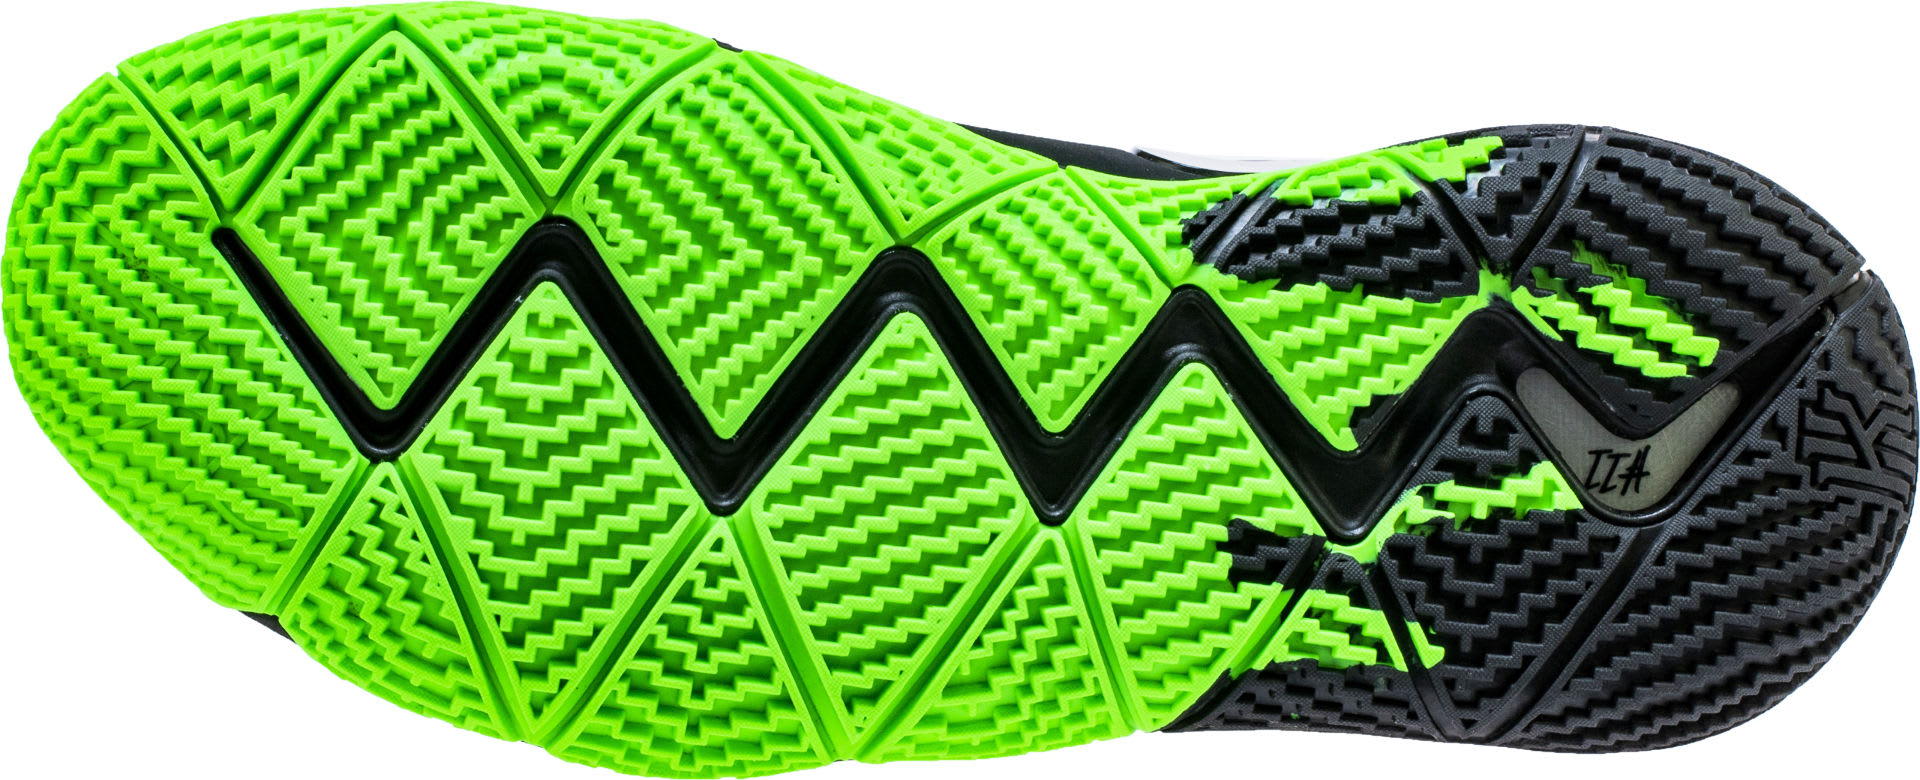 new product 1fb23 bd5a4 Nike Kyrie 4 Black Rage Green Halloween Release Date 943806 ...